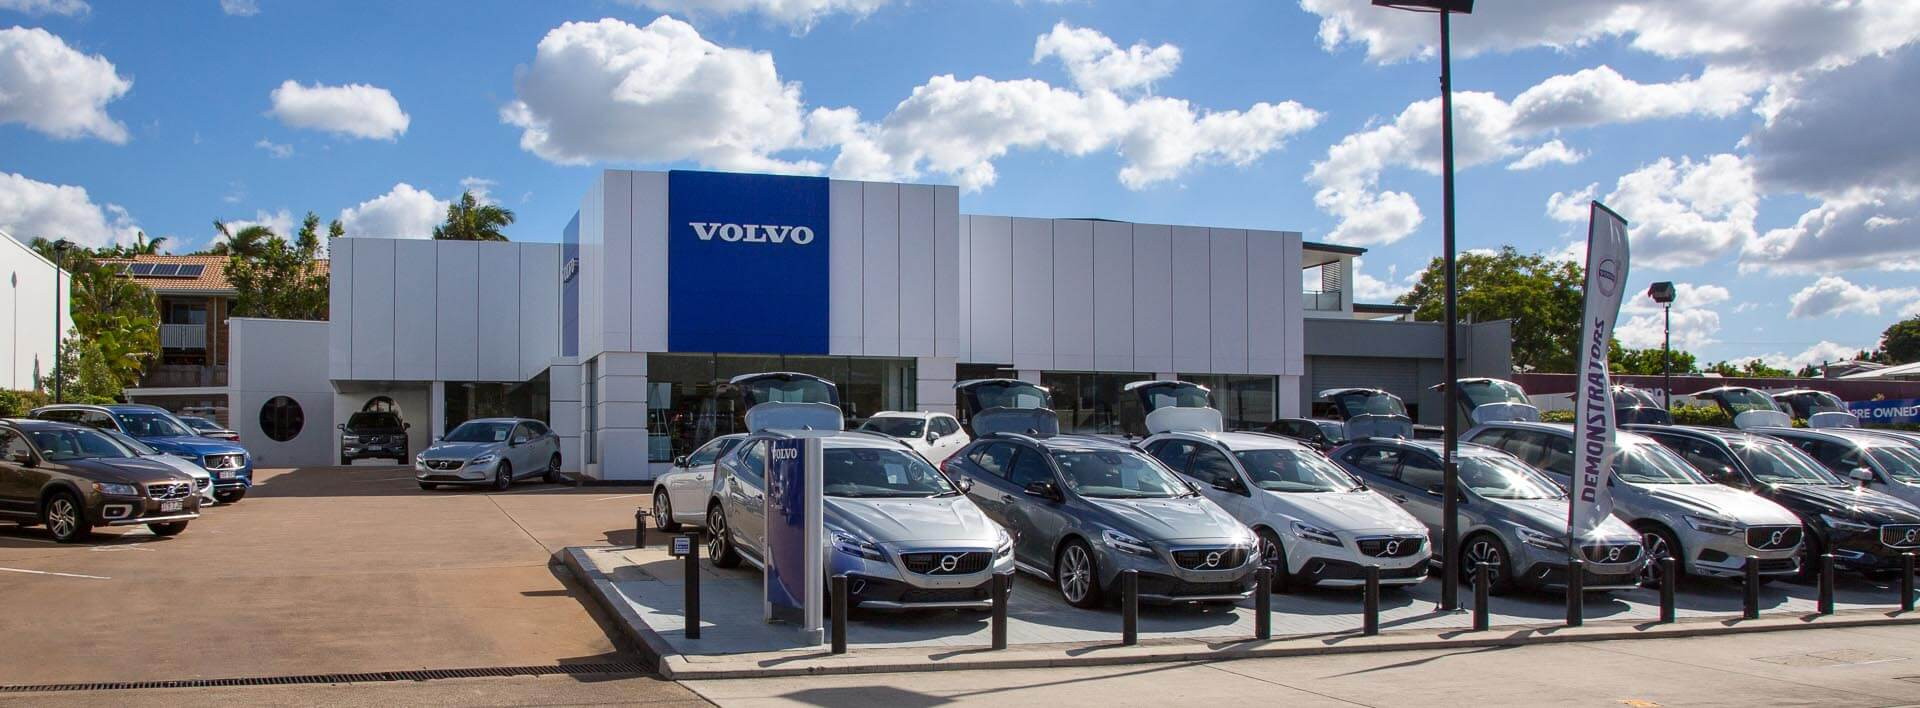 Volvo Cars Mt Gravatt Brisbane